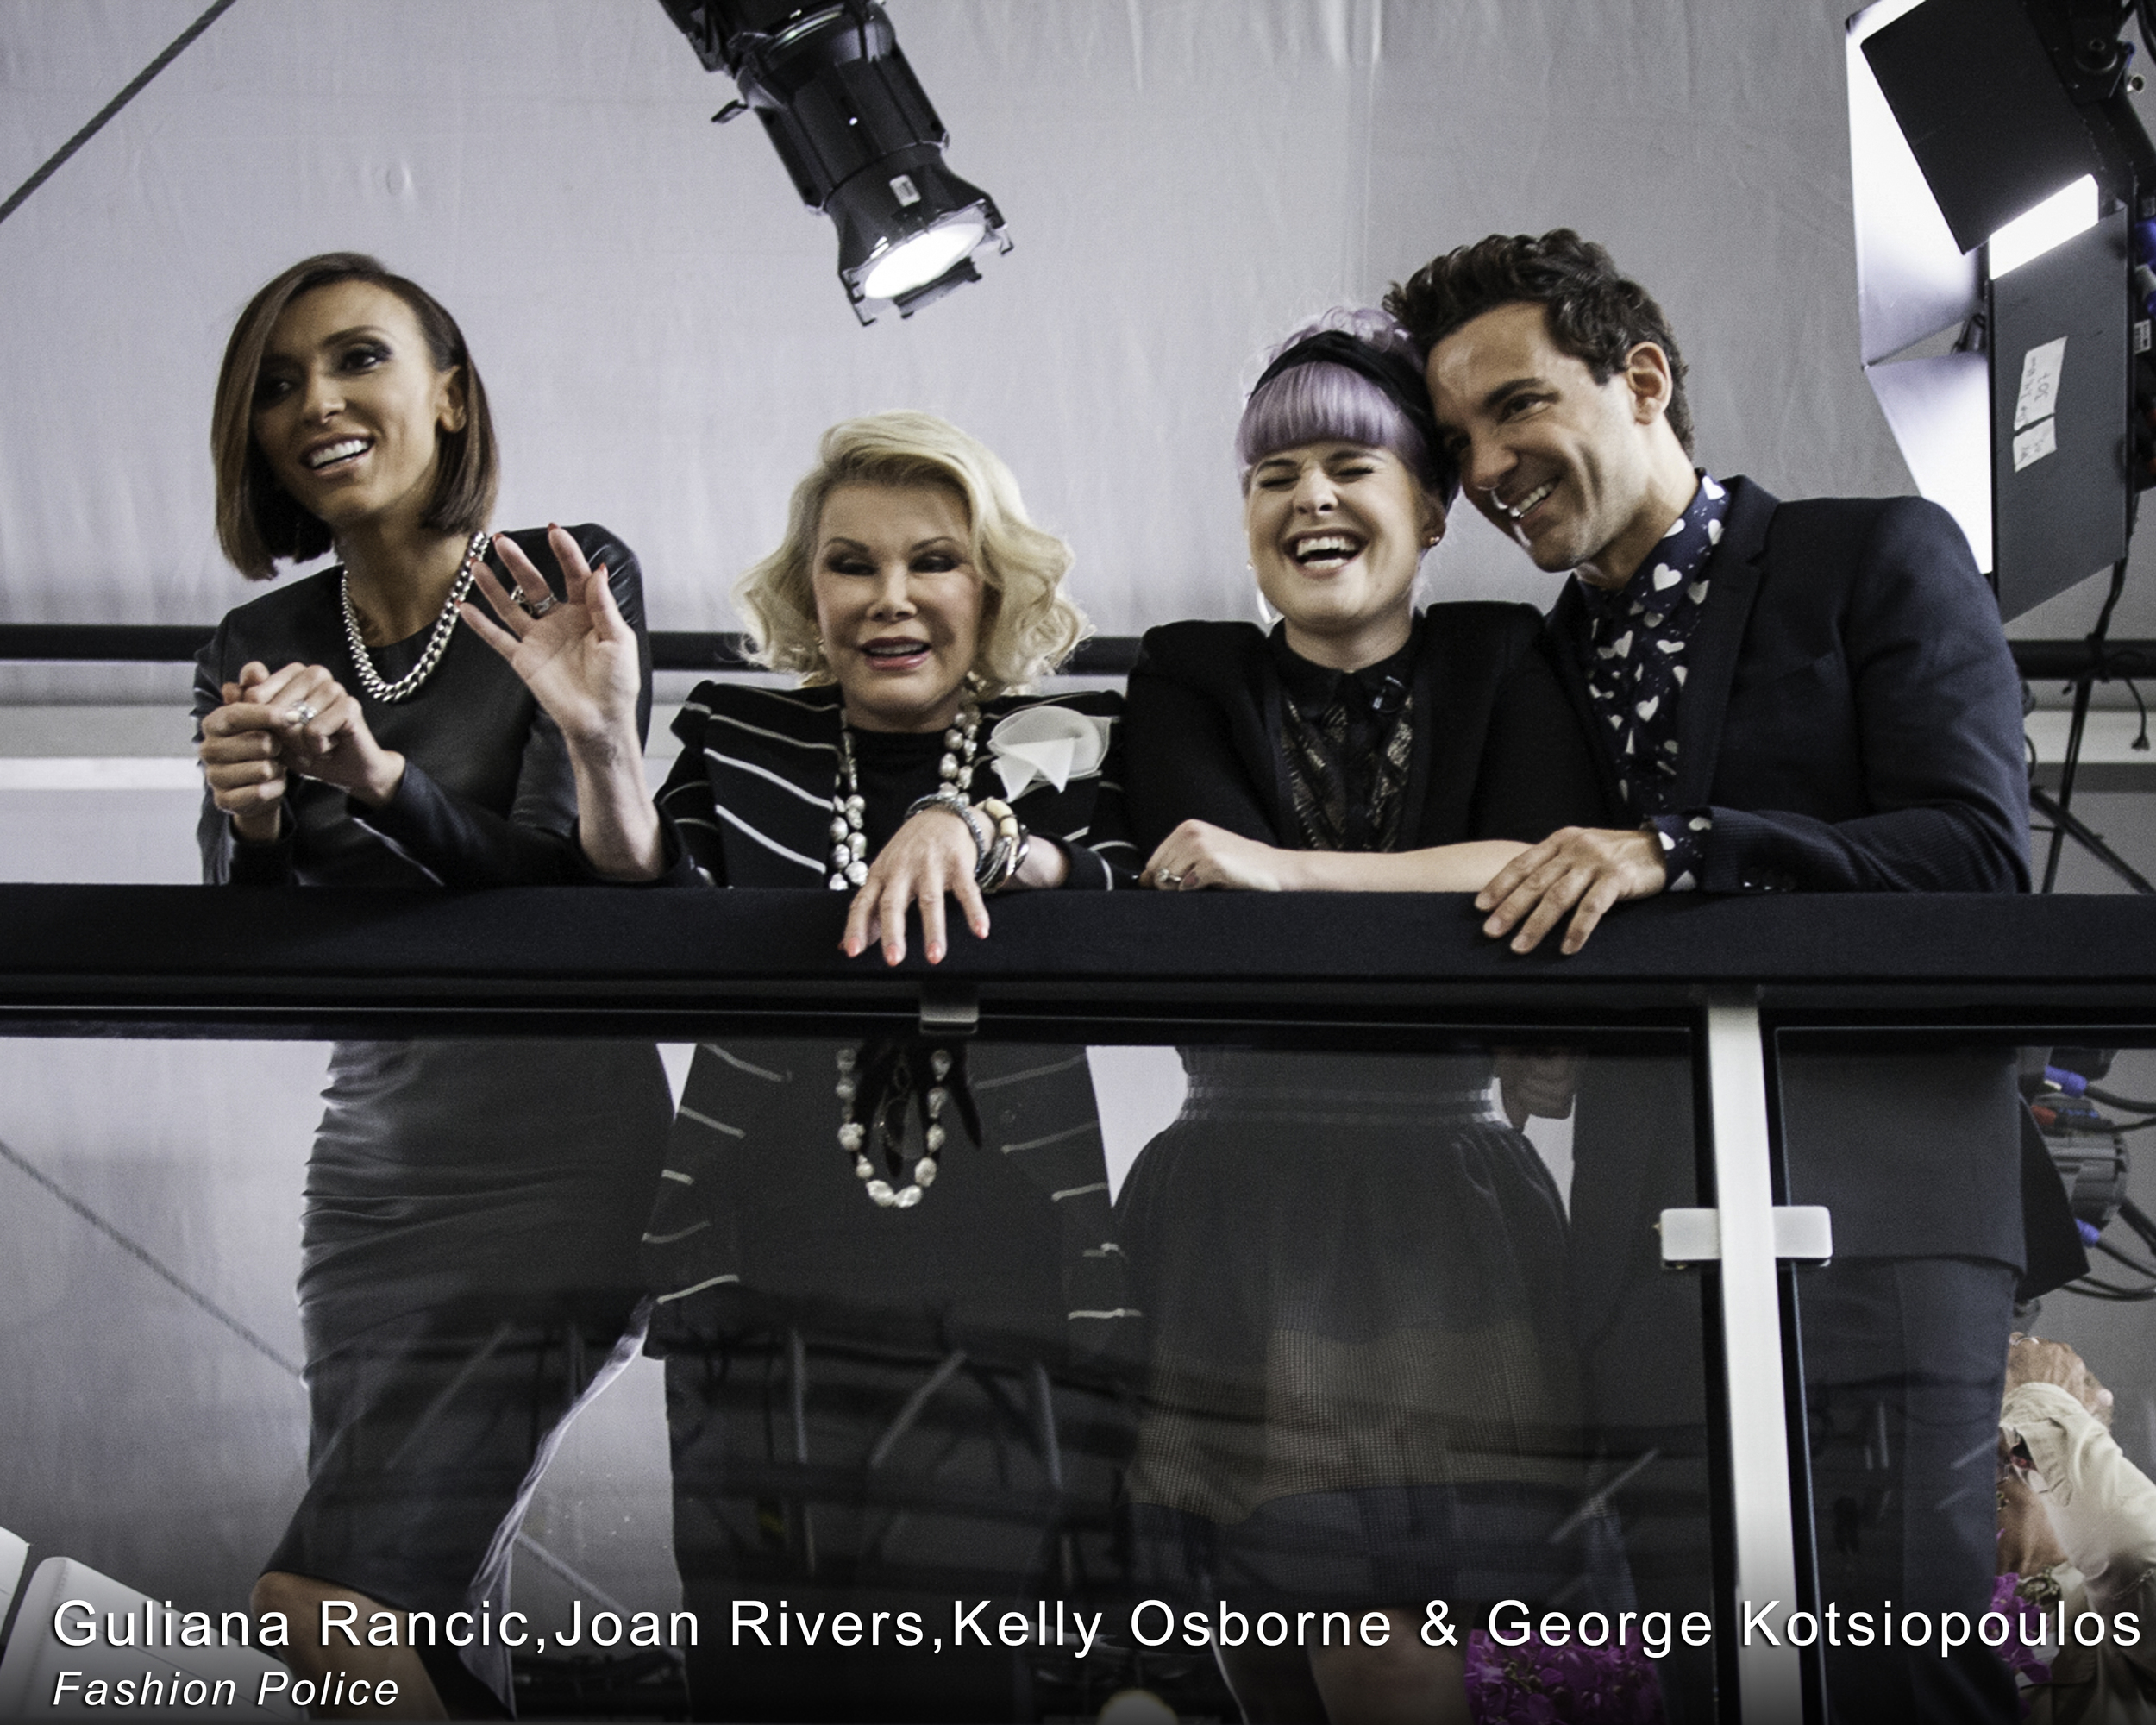 Fashion-Police-Guliana-Rancic-Joan-Rivers-Kelly-Osborne-George-Kotsiopoulos-Shana-Schnur-Photography-16.jpg